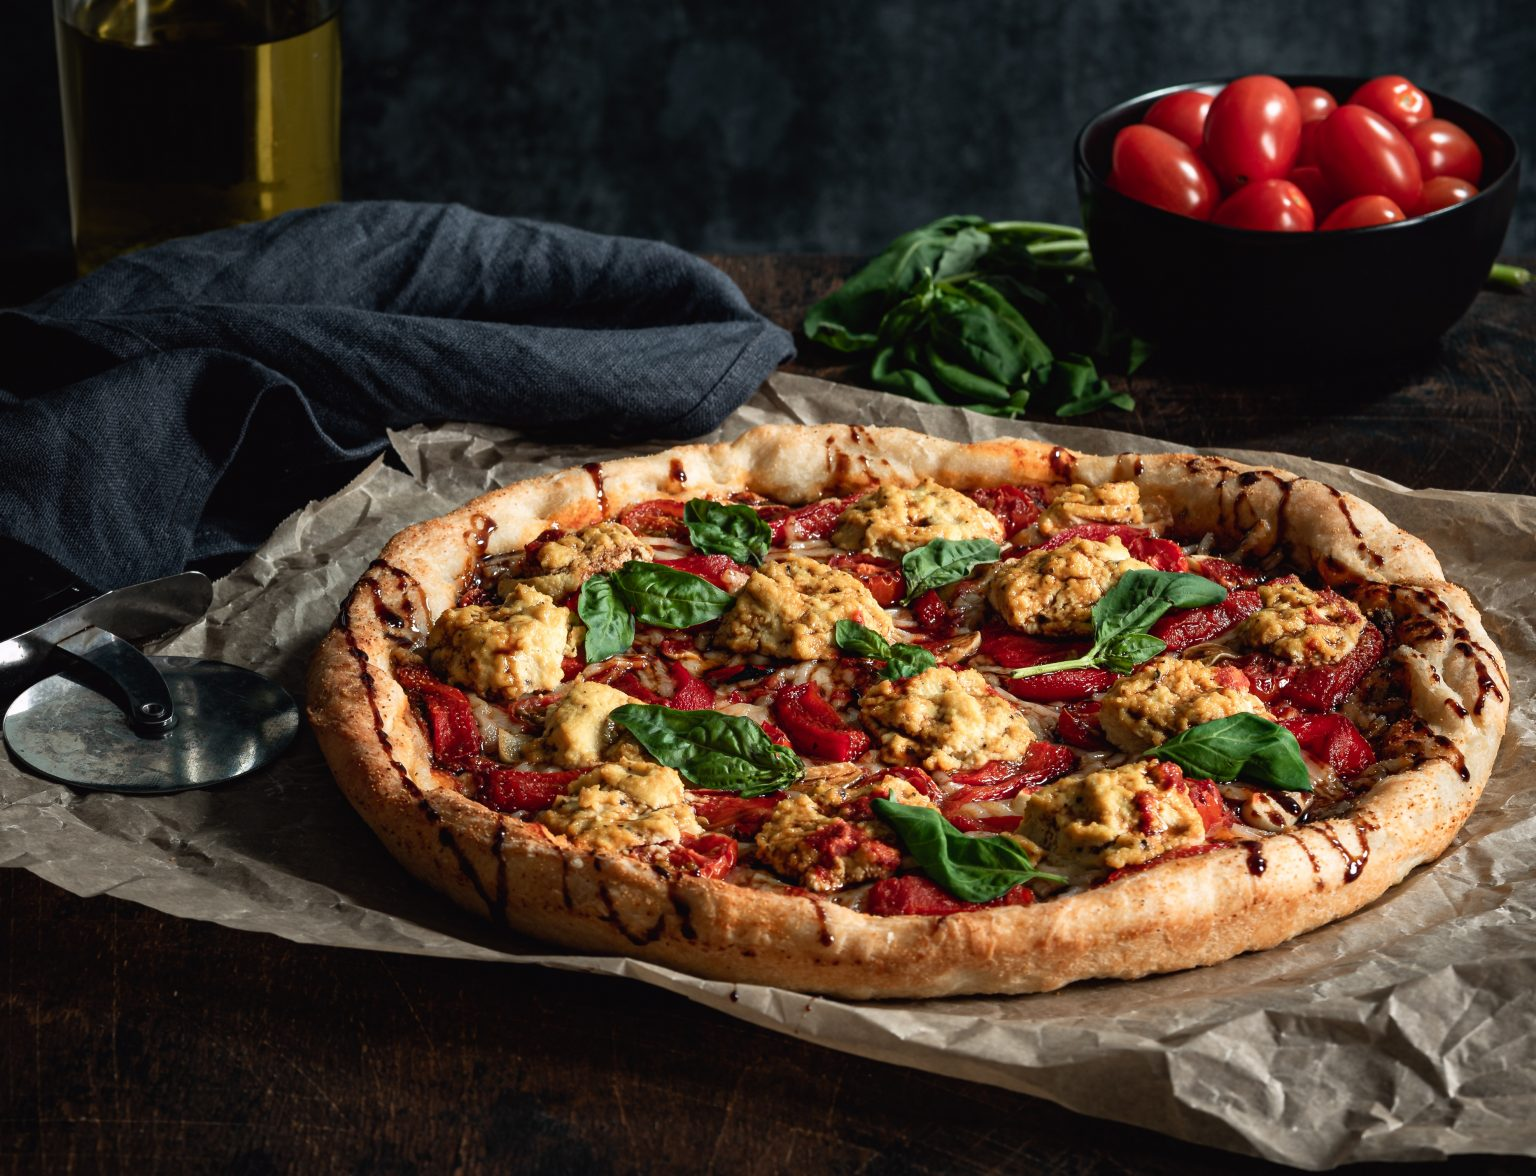 Vegan Roasted Red Pepper Pizza with Tofu Ricotta and Balsamic Glaze